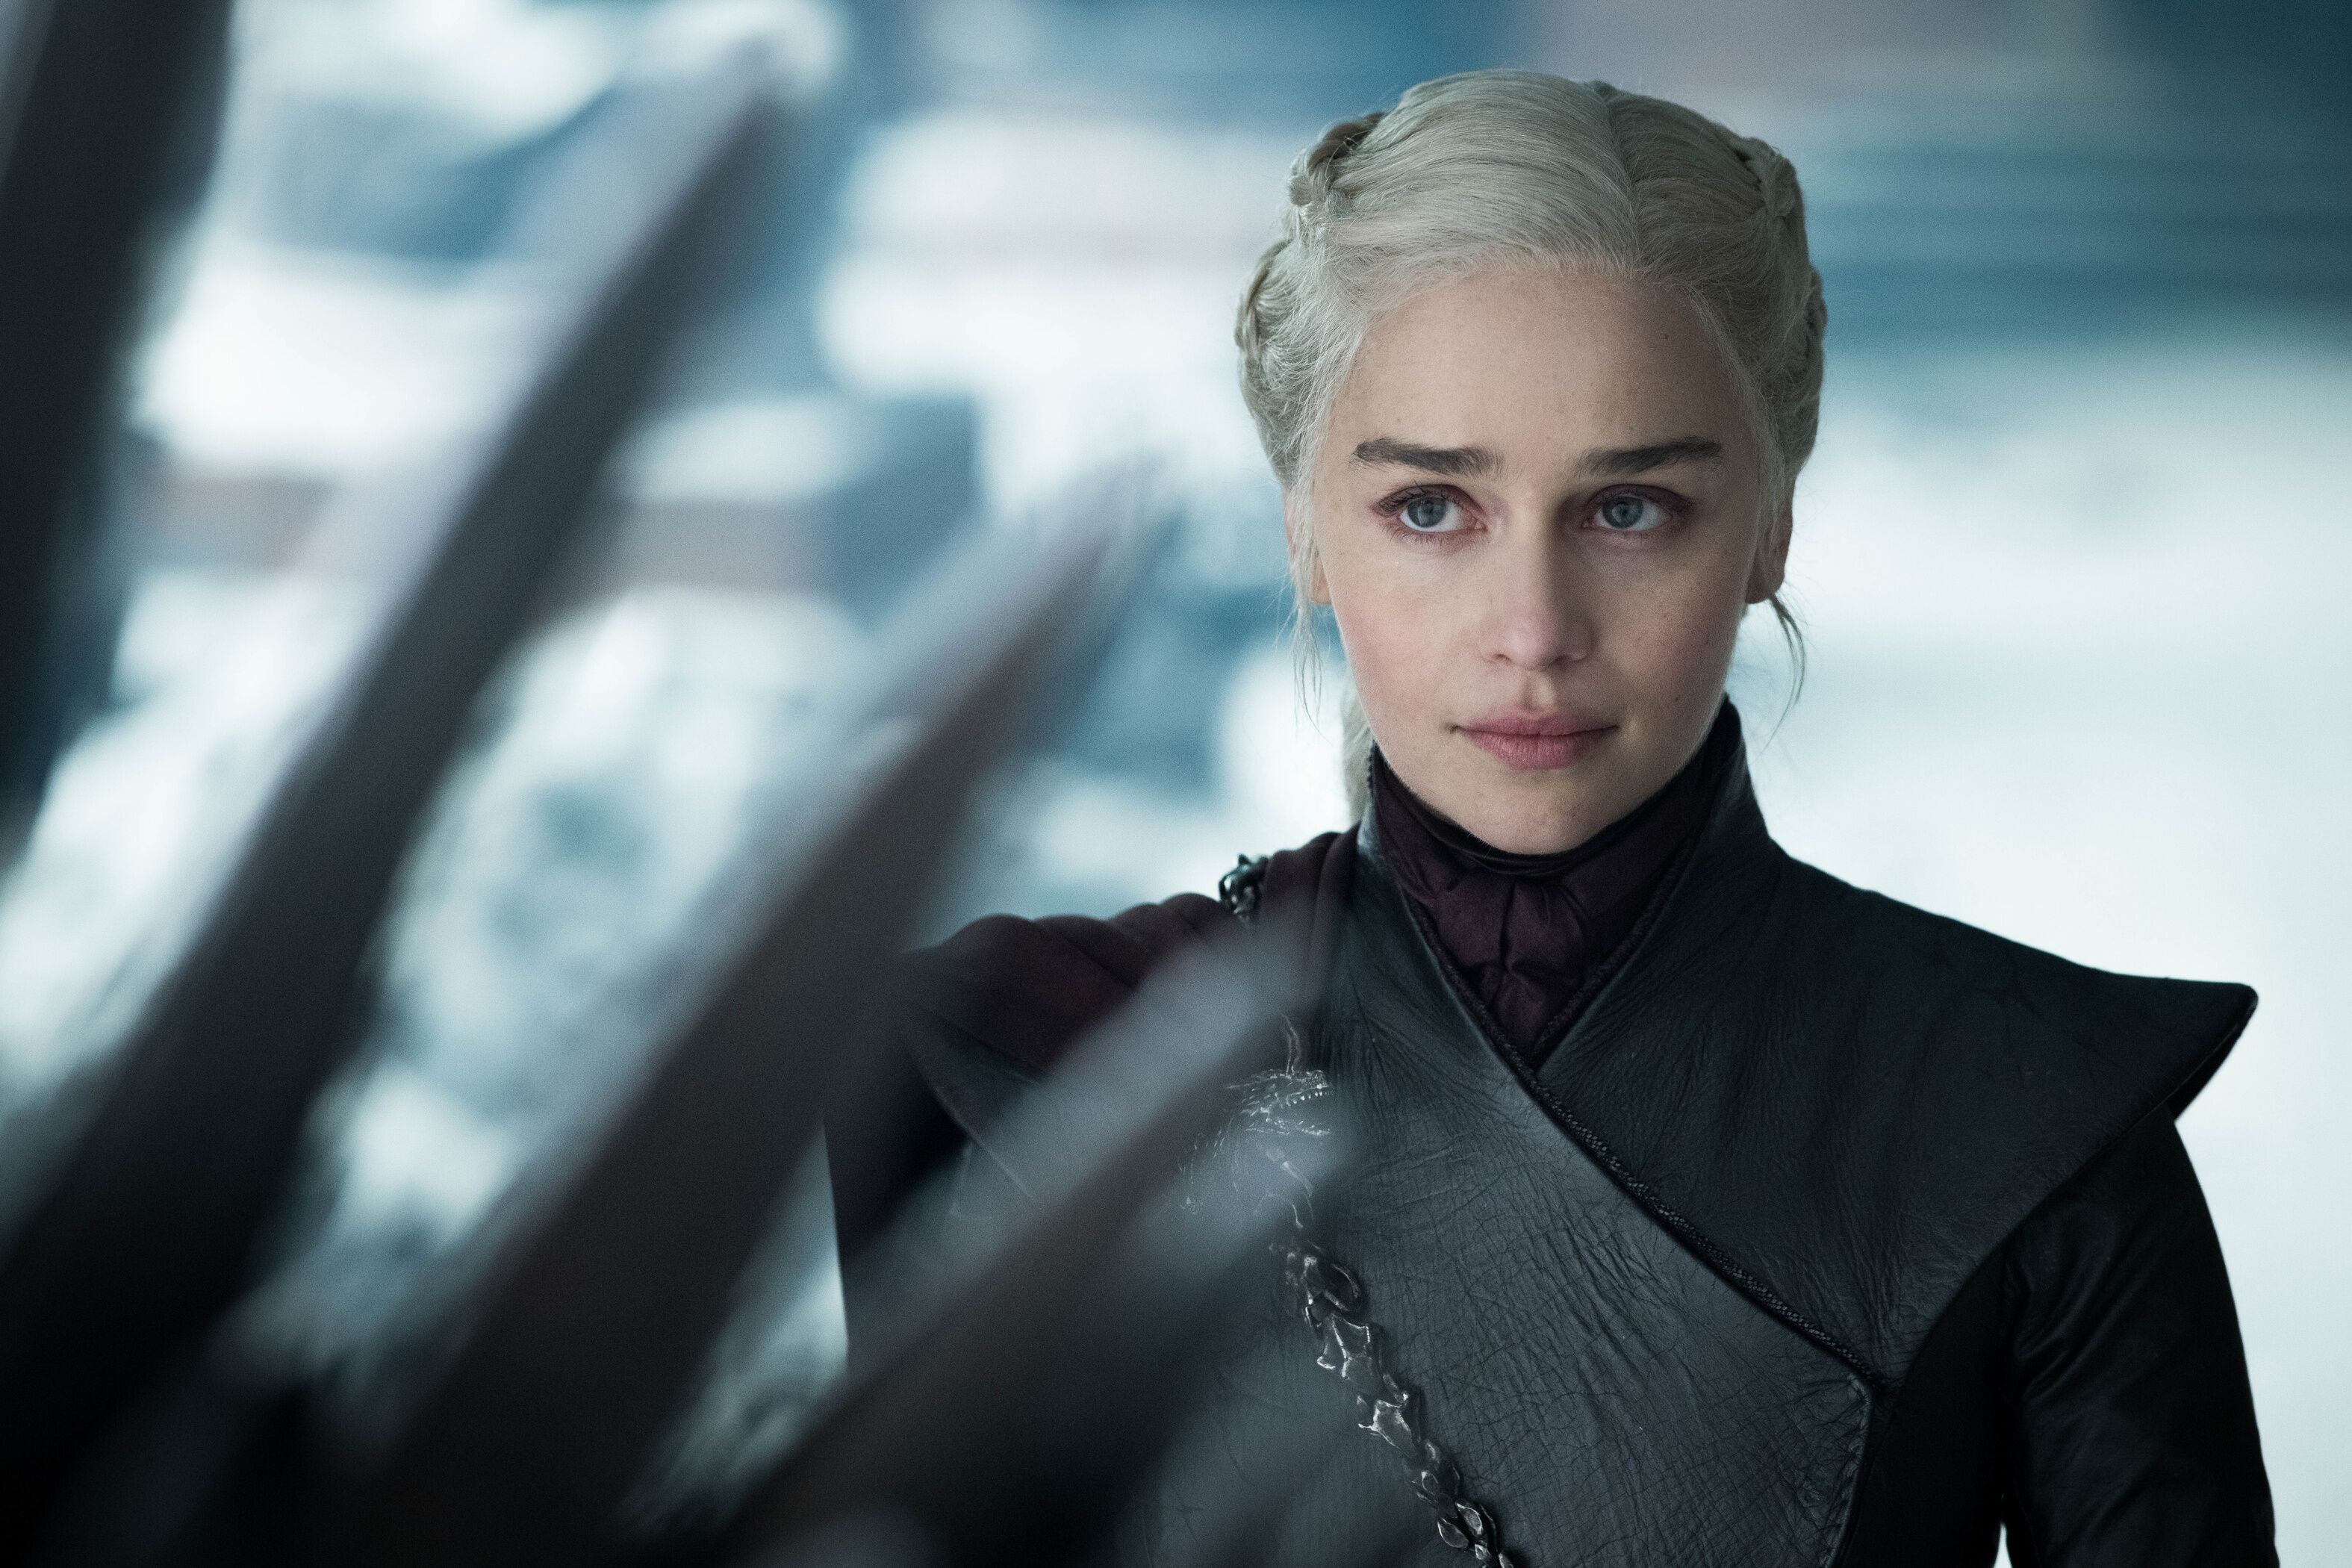 Side-by-side video compares the two times Daenerys has approached the Iron Throne